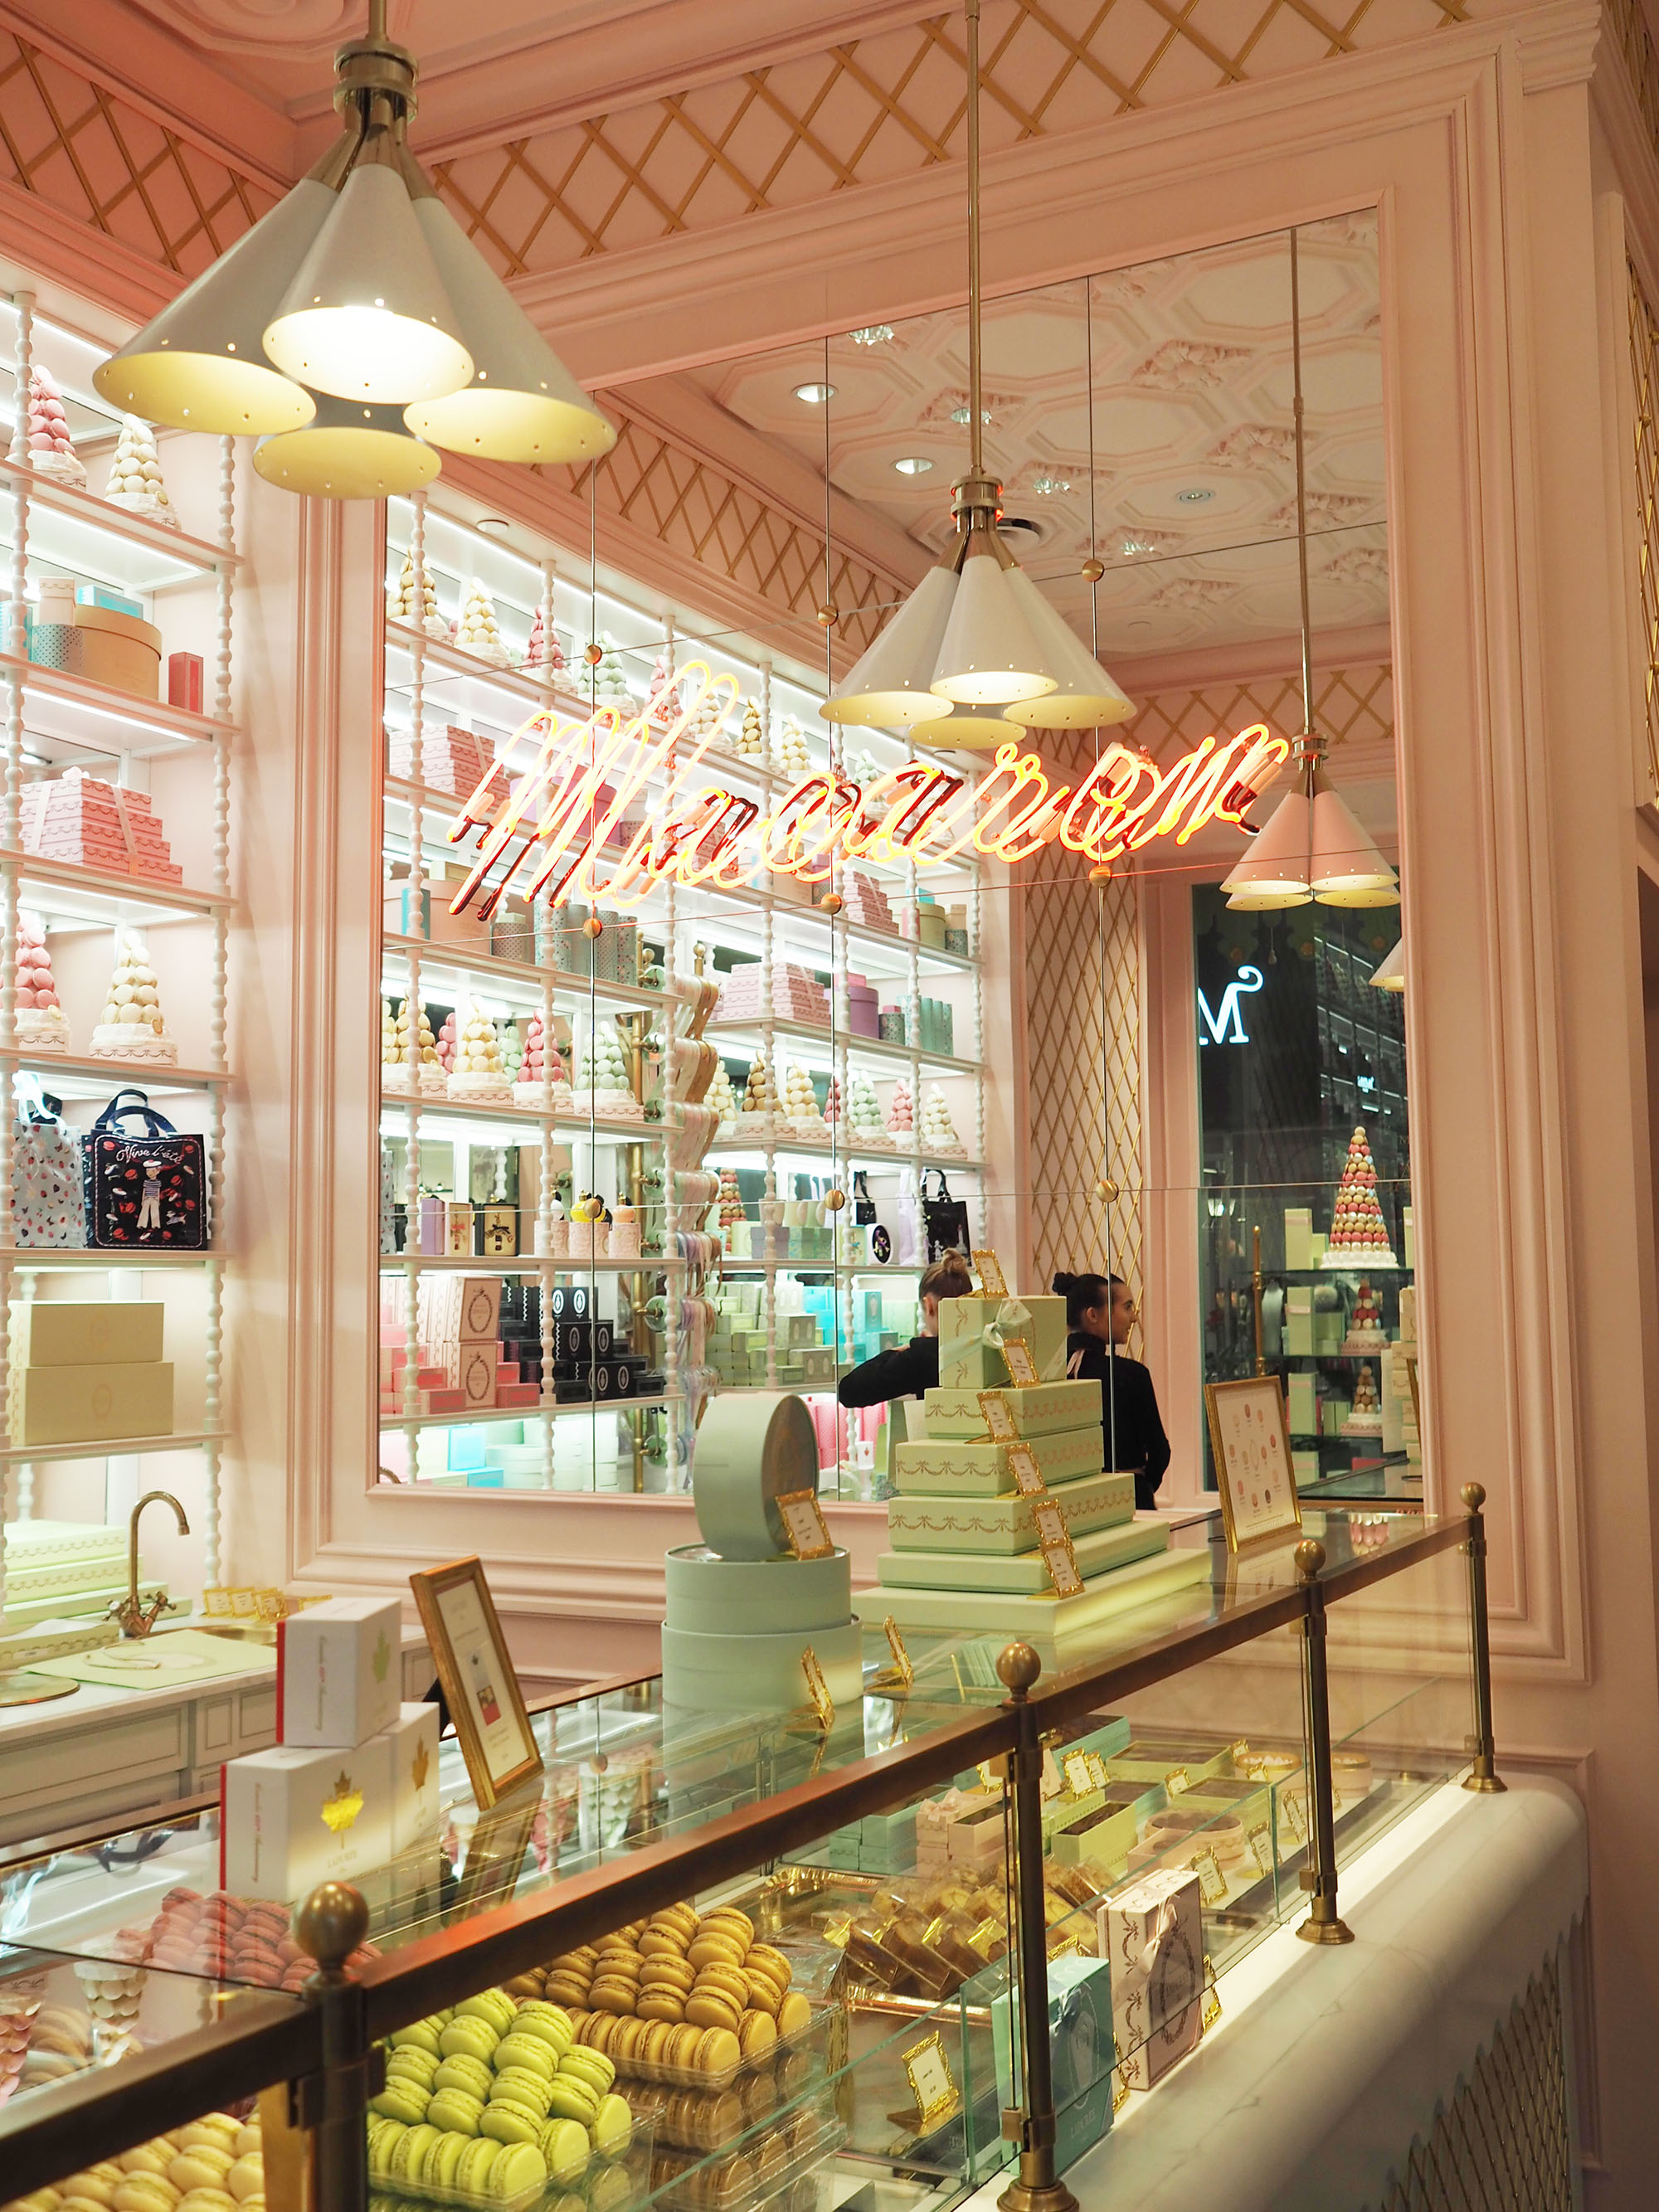 Ladurée, 398 W Broadway, New York, NY (2019)